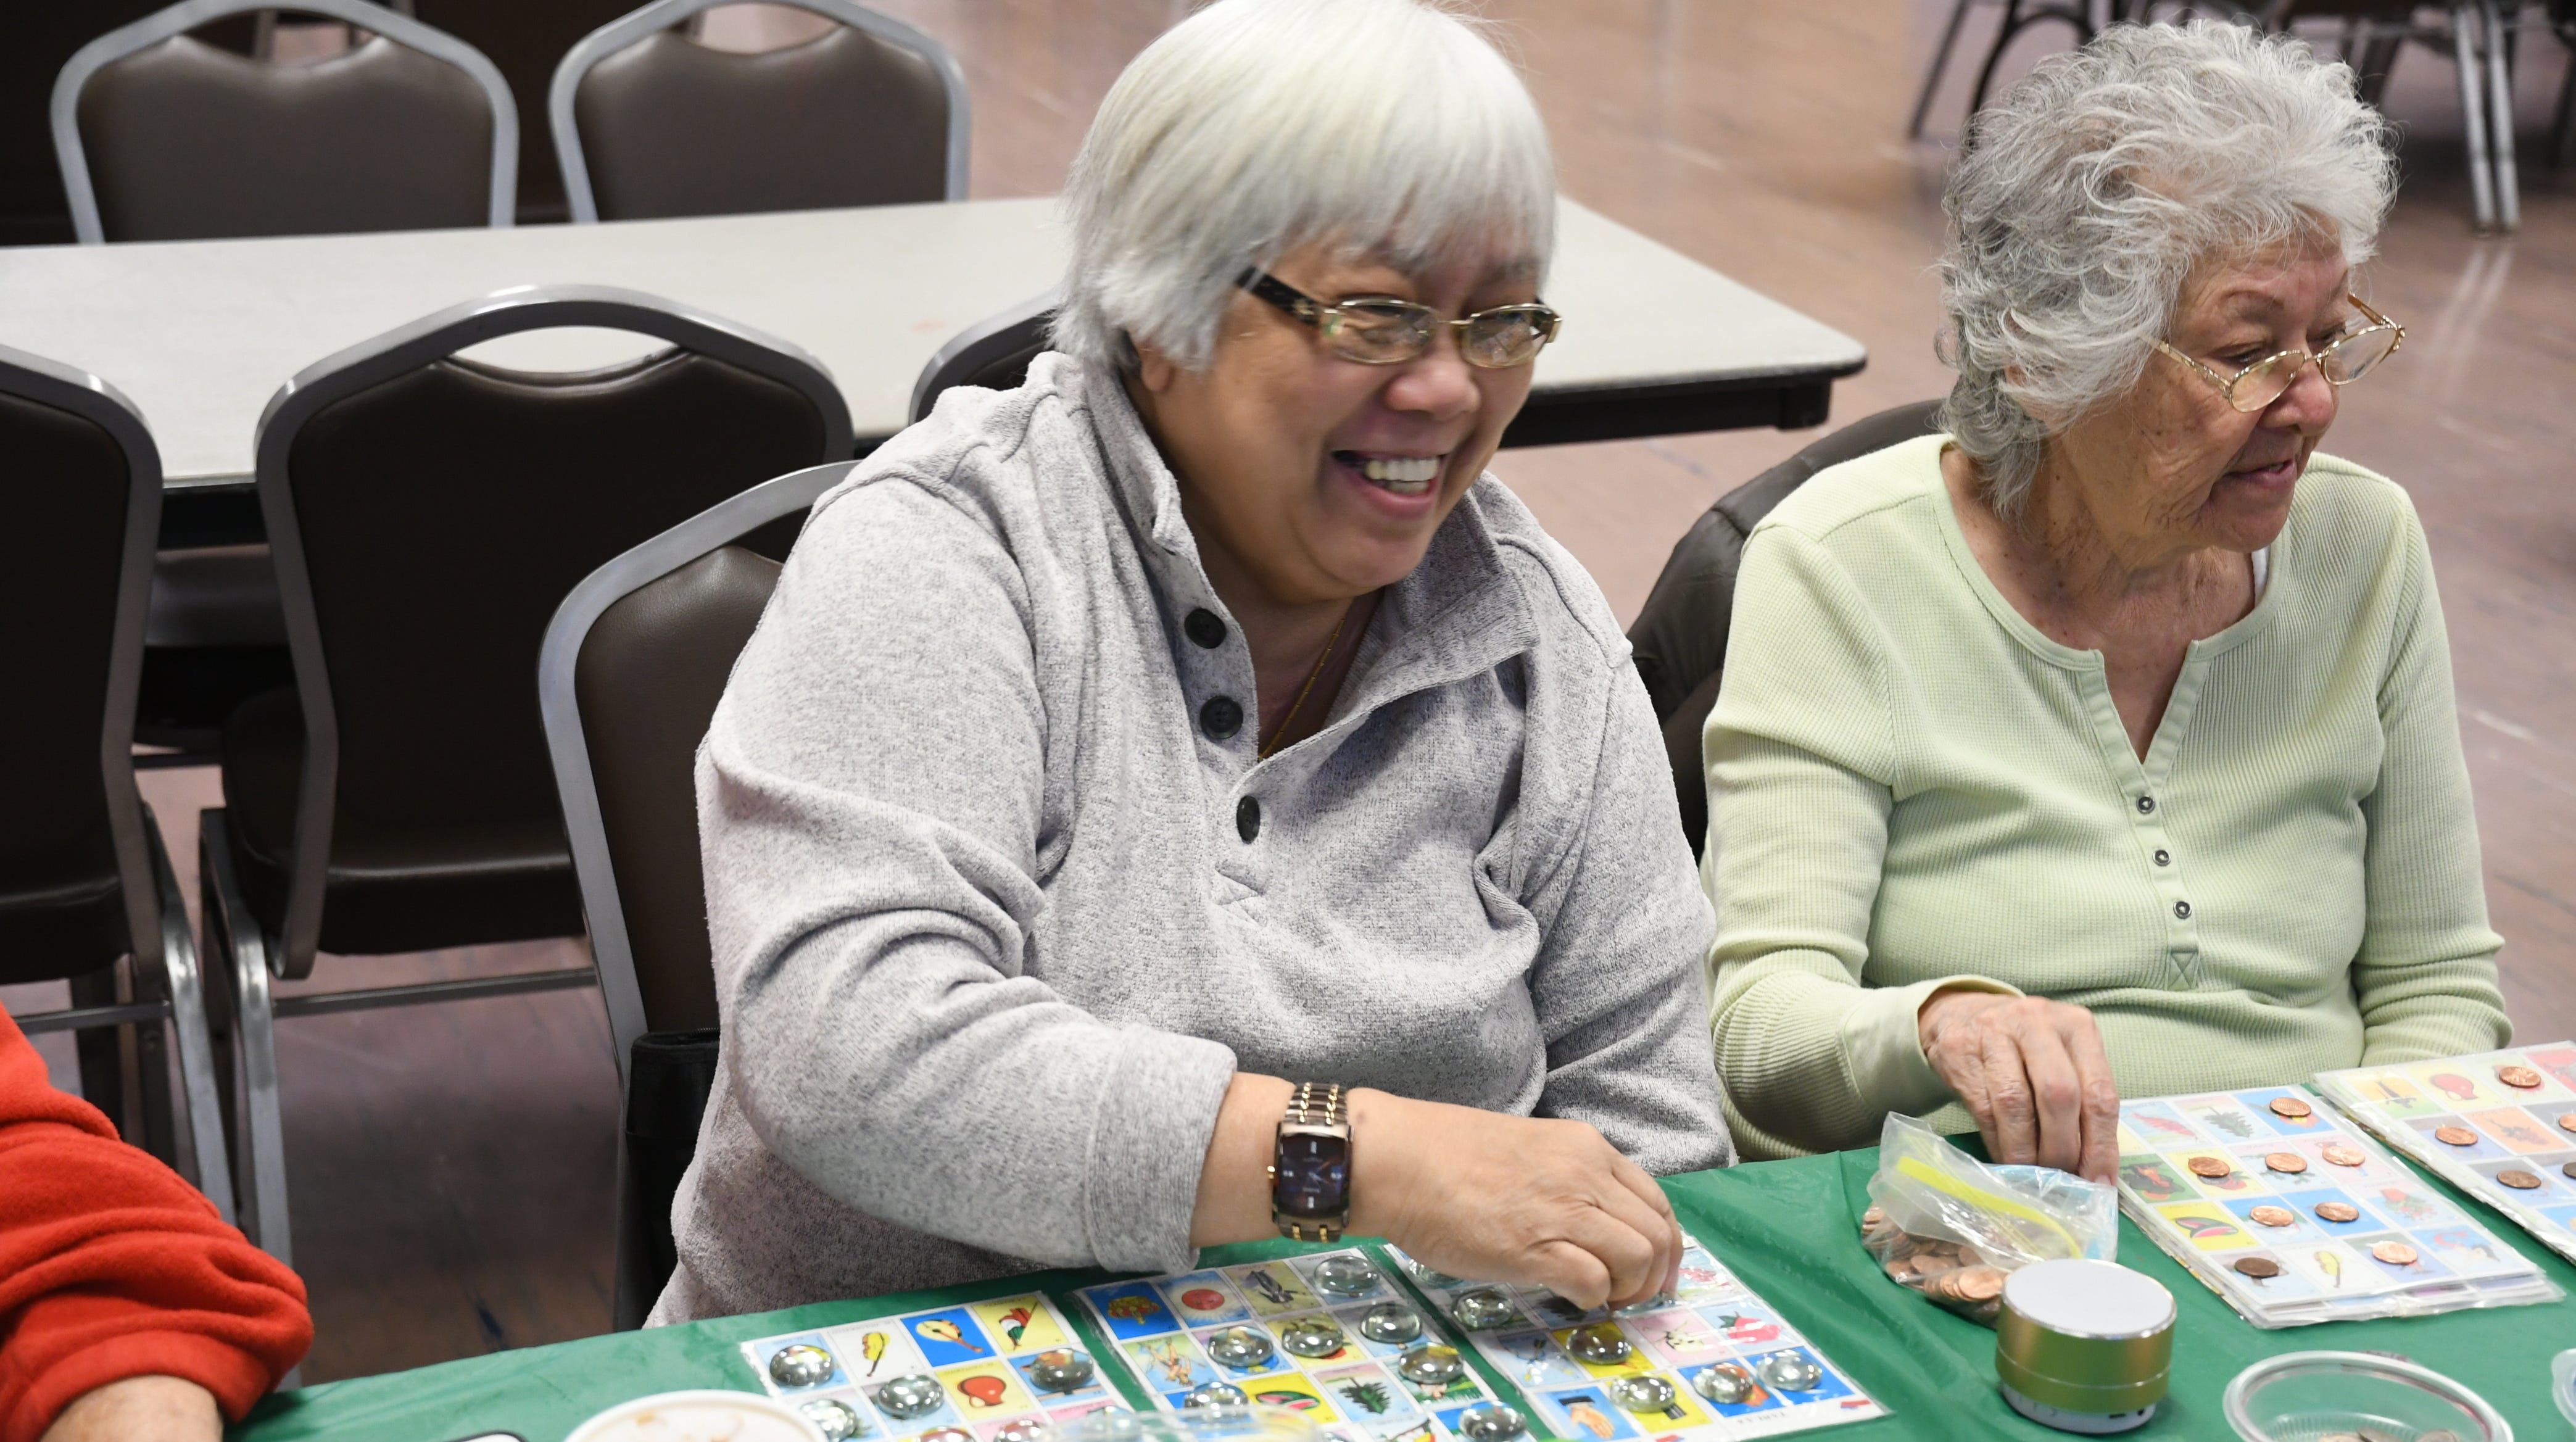 Tulare County seniors play loteria and bingo at the Visalia Senior Center. They only play for pennies, but even that is a struggle for many seniors who live on a fixed income.